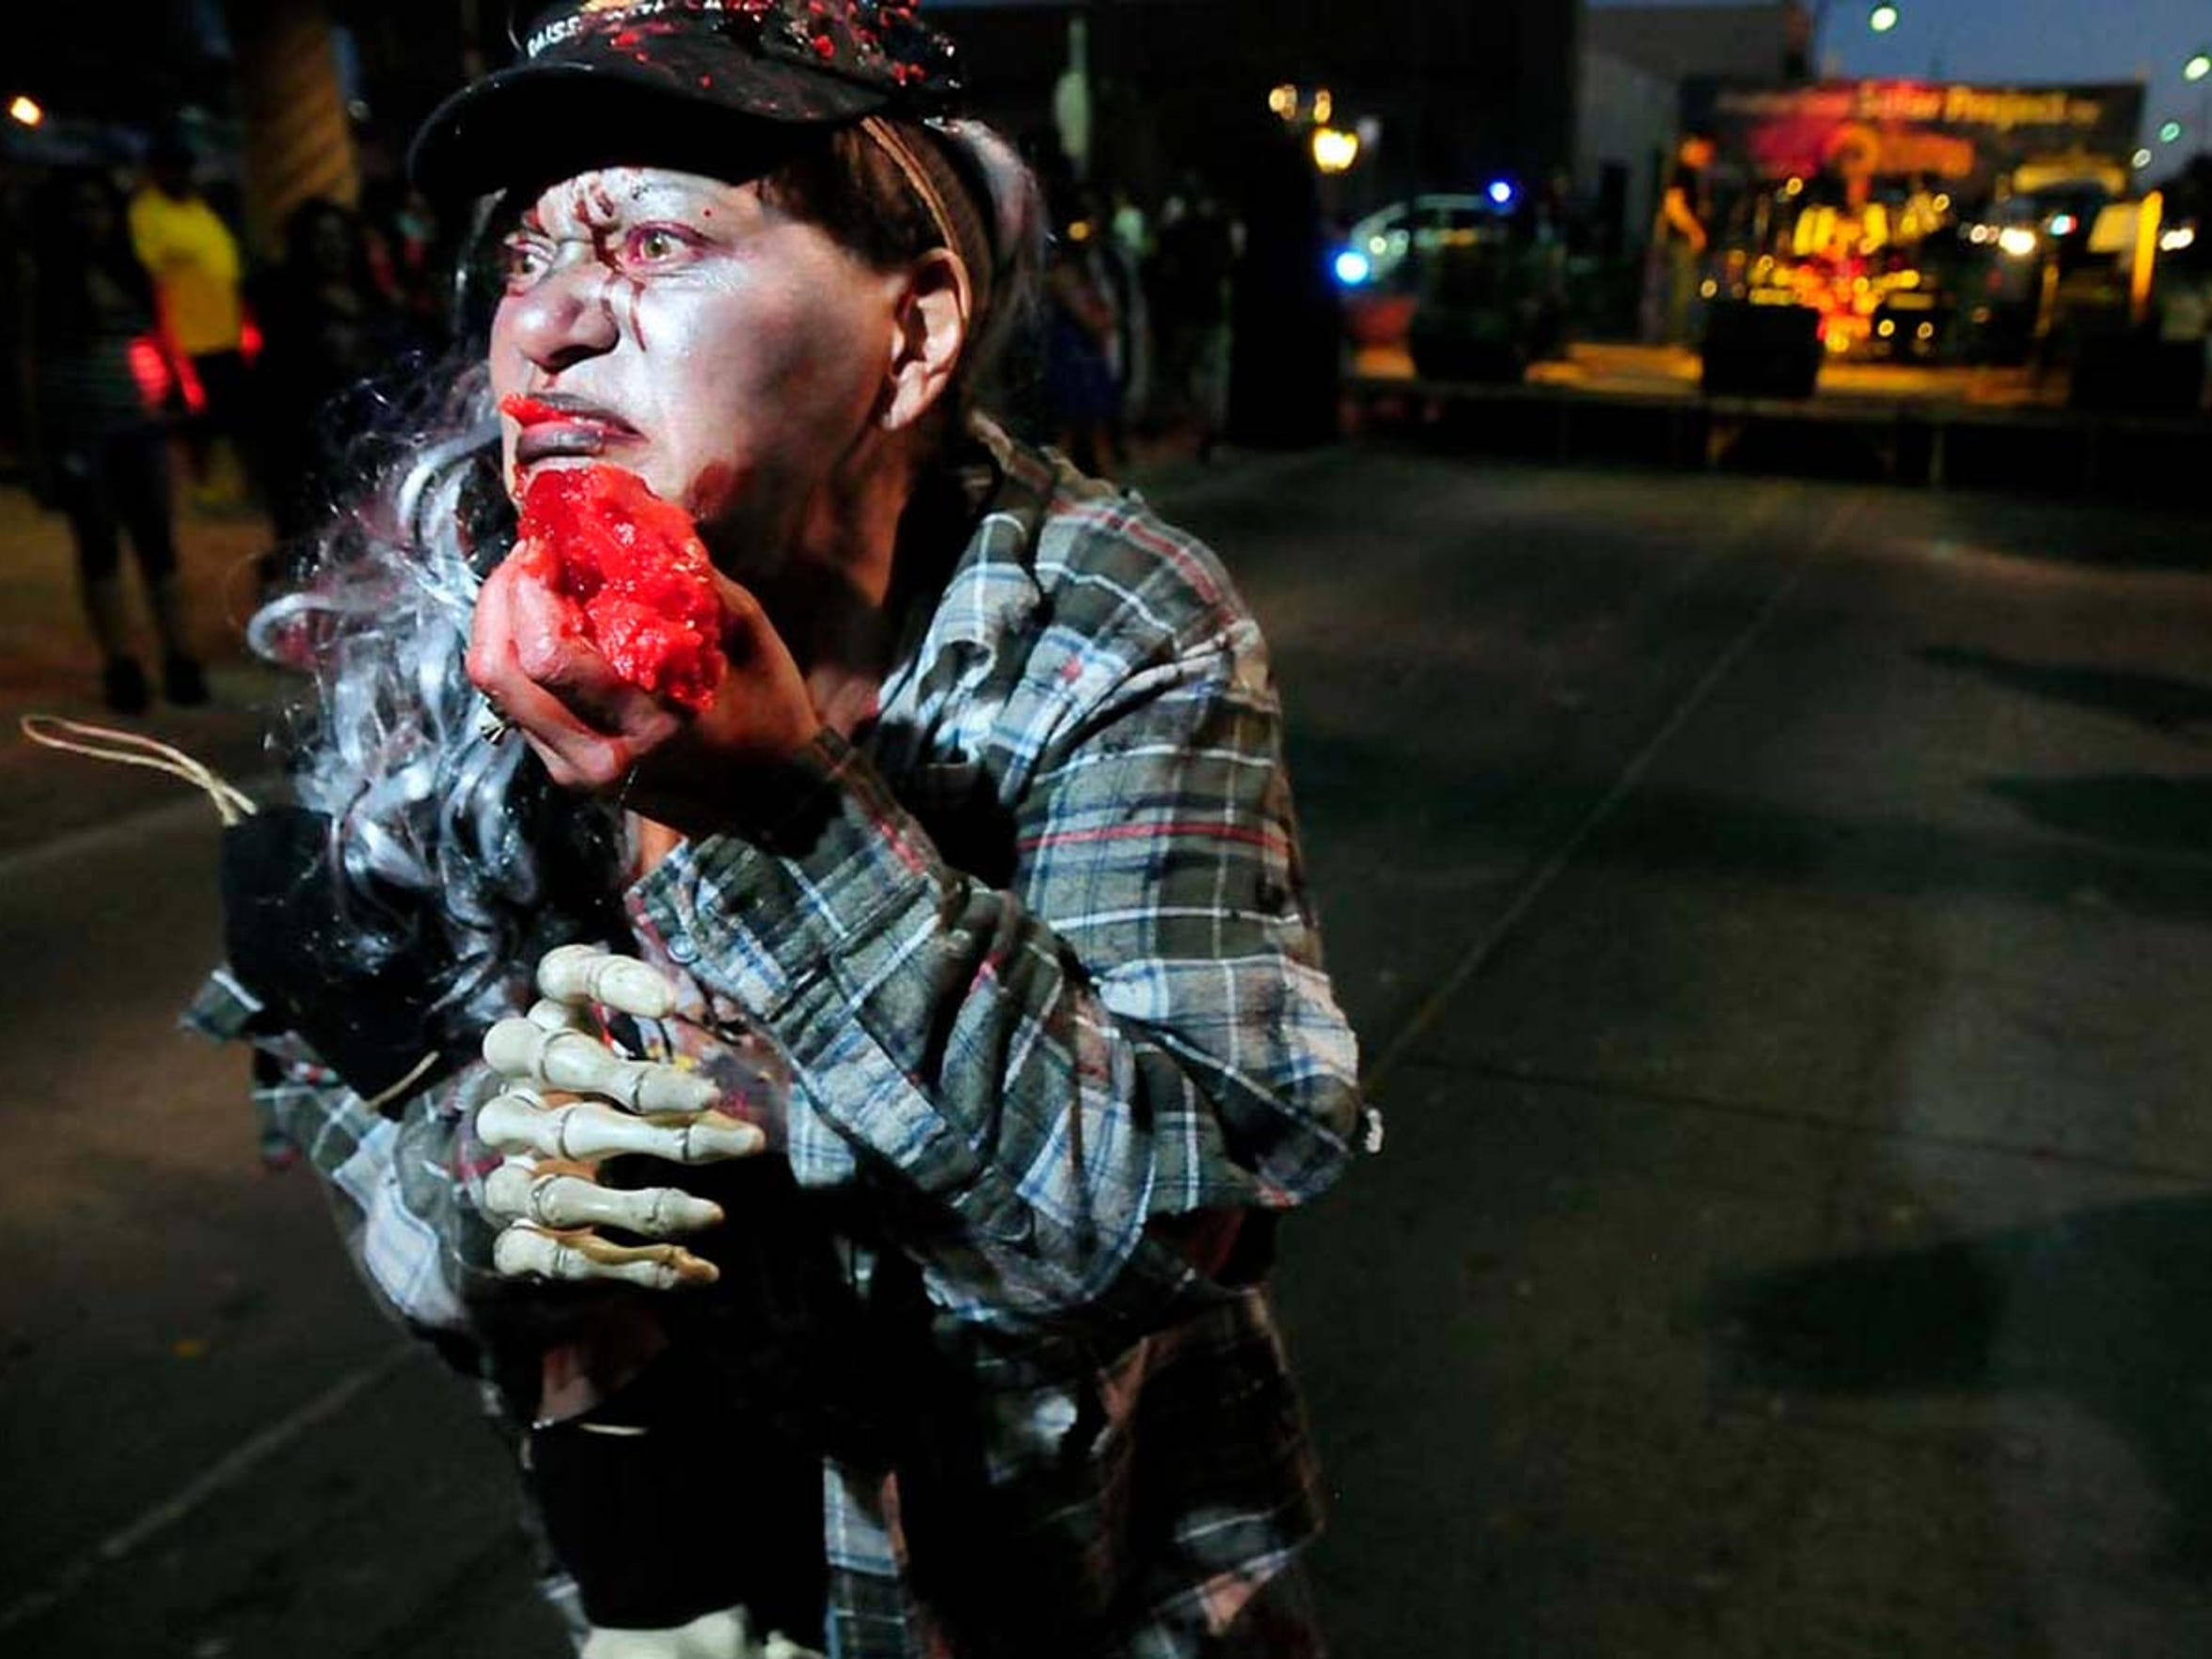 Lani Cooper, of Las Cruces, eats Jell-O brains during last year's Zombie Walk on Main Street. Attending the event is free, however there is a small registration fee for participants. All ages are welcome.